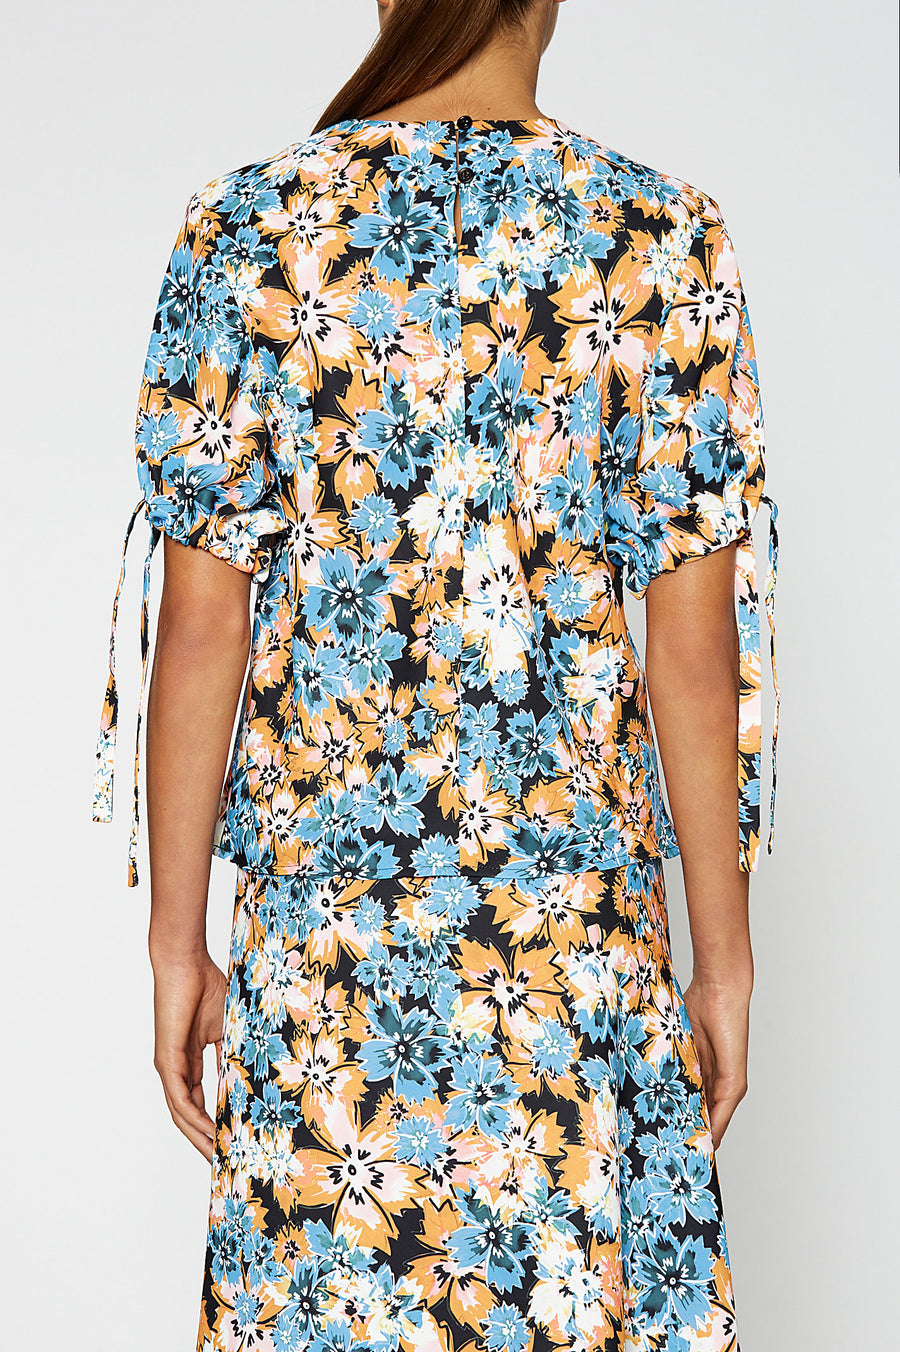 SPIKEY FLORAL TOP